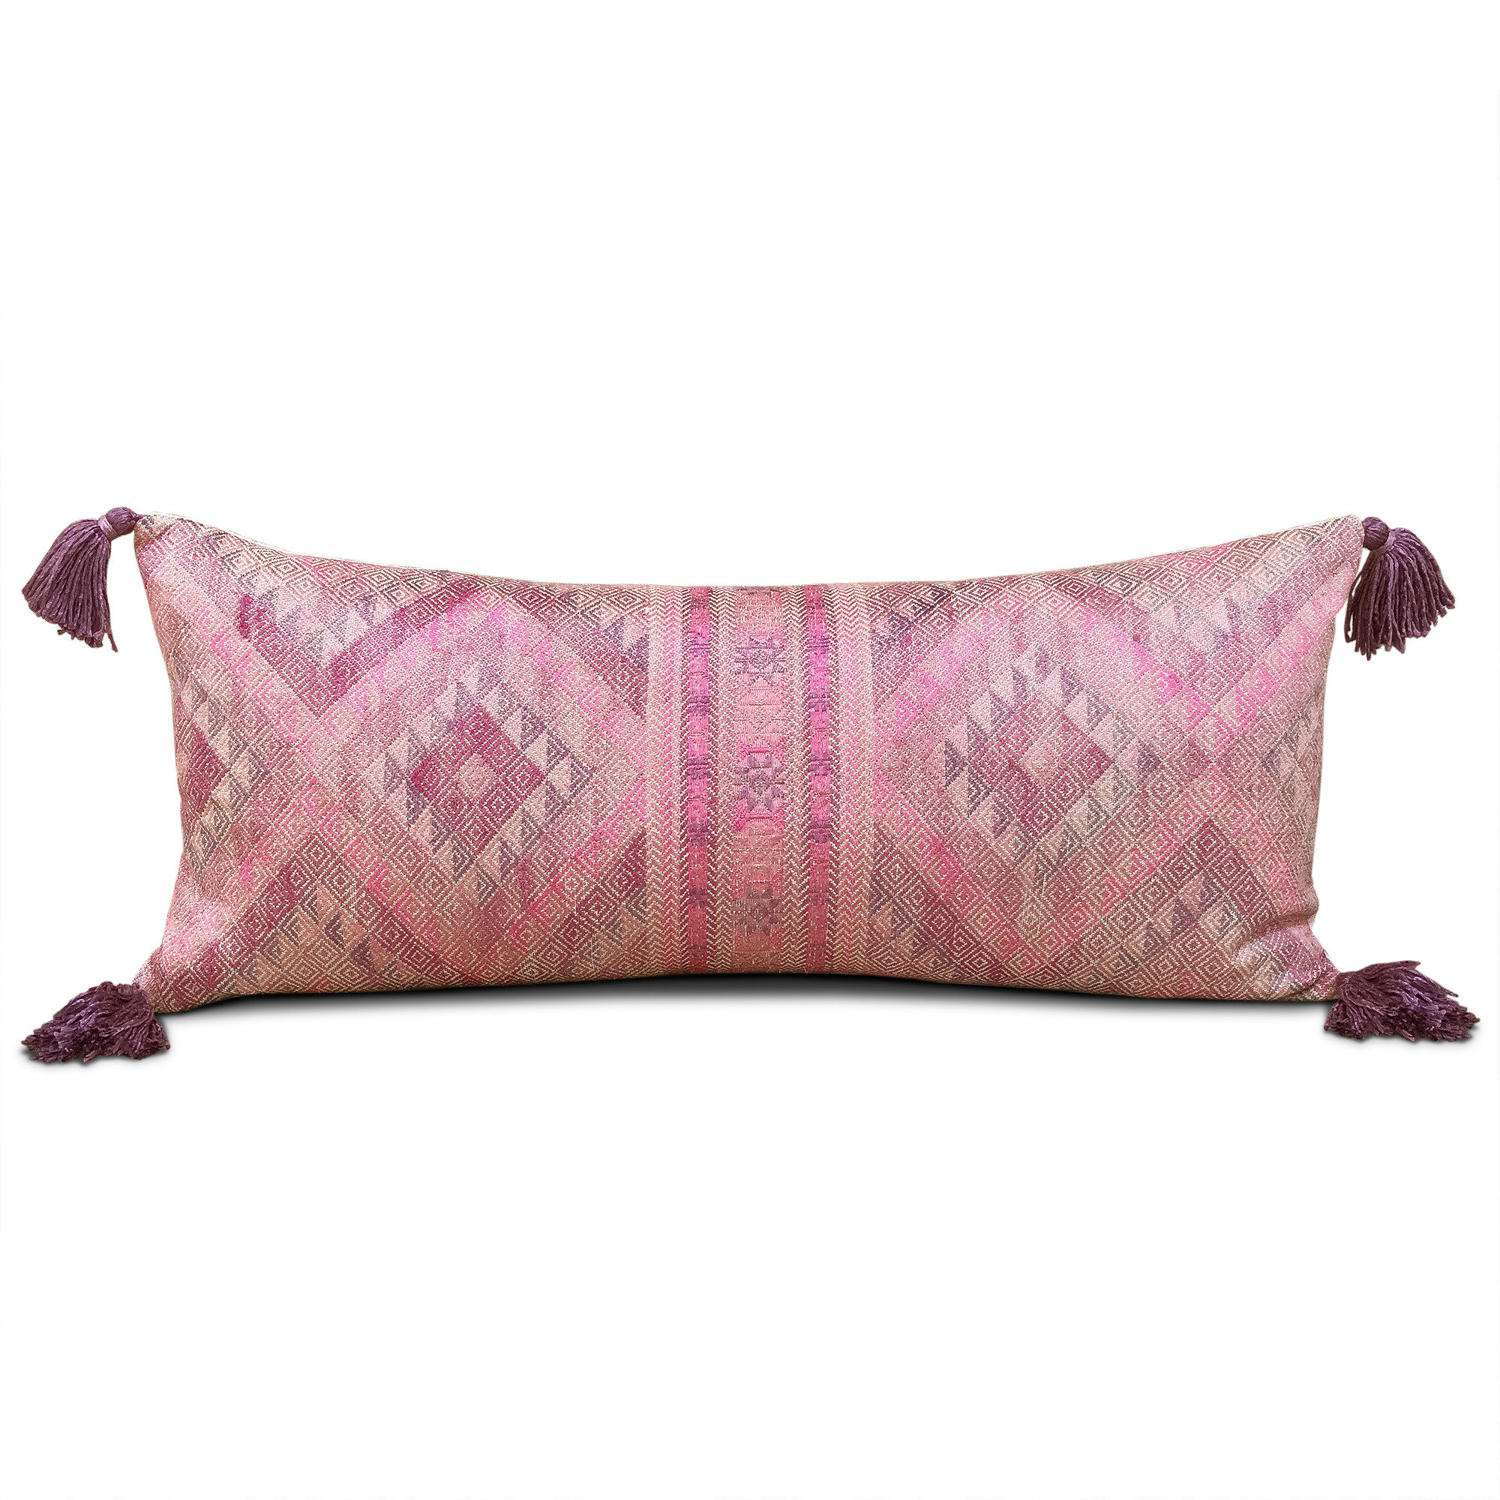 Yao Wedding Blanket Cushion with Tassels